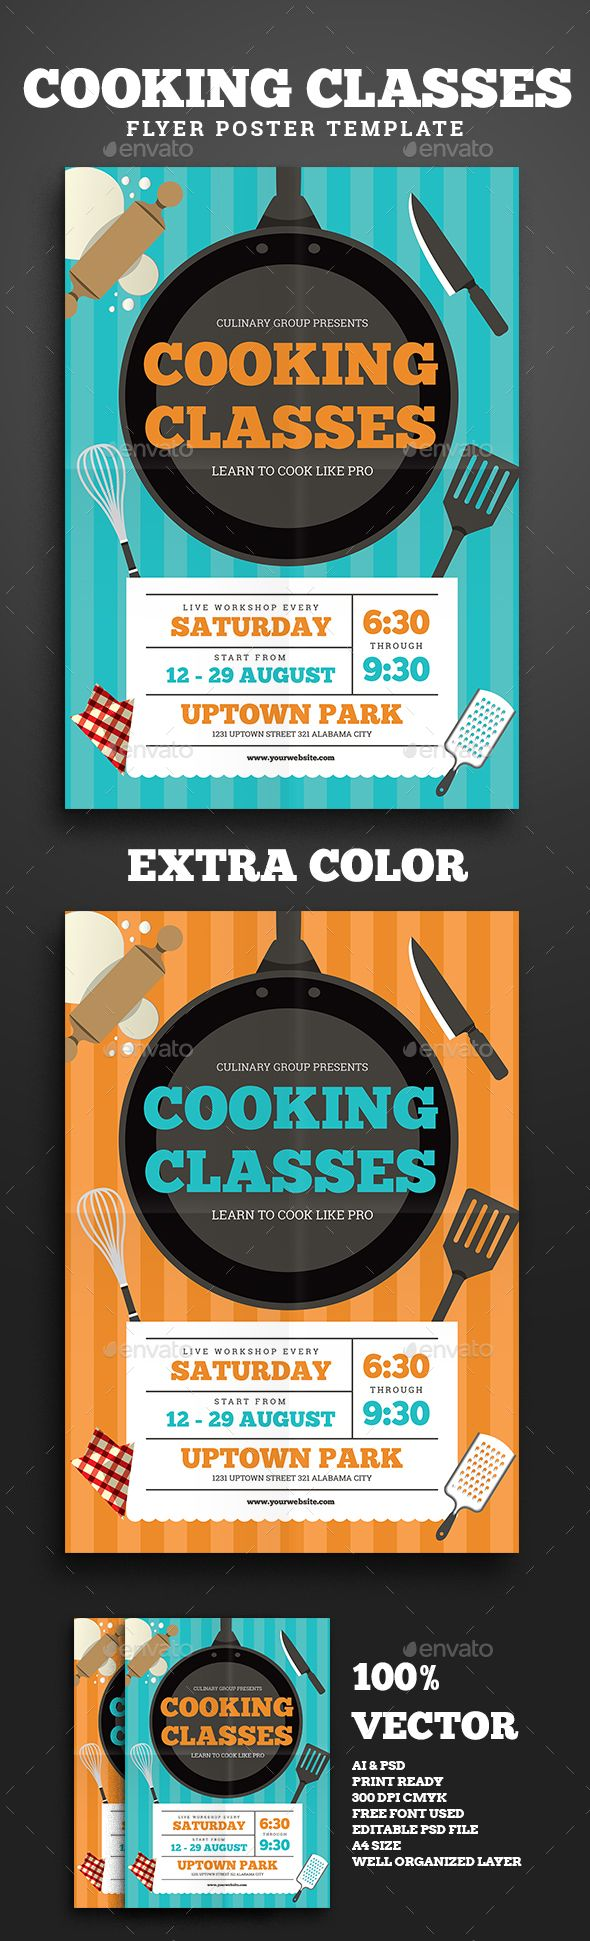 Cooking Classes Flyer — Photoshop PSD #print #art • Available here → https://graphicriver.net/item/cooking-classes-flyer/16963369?ref=pxcr